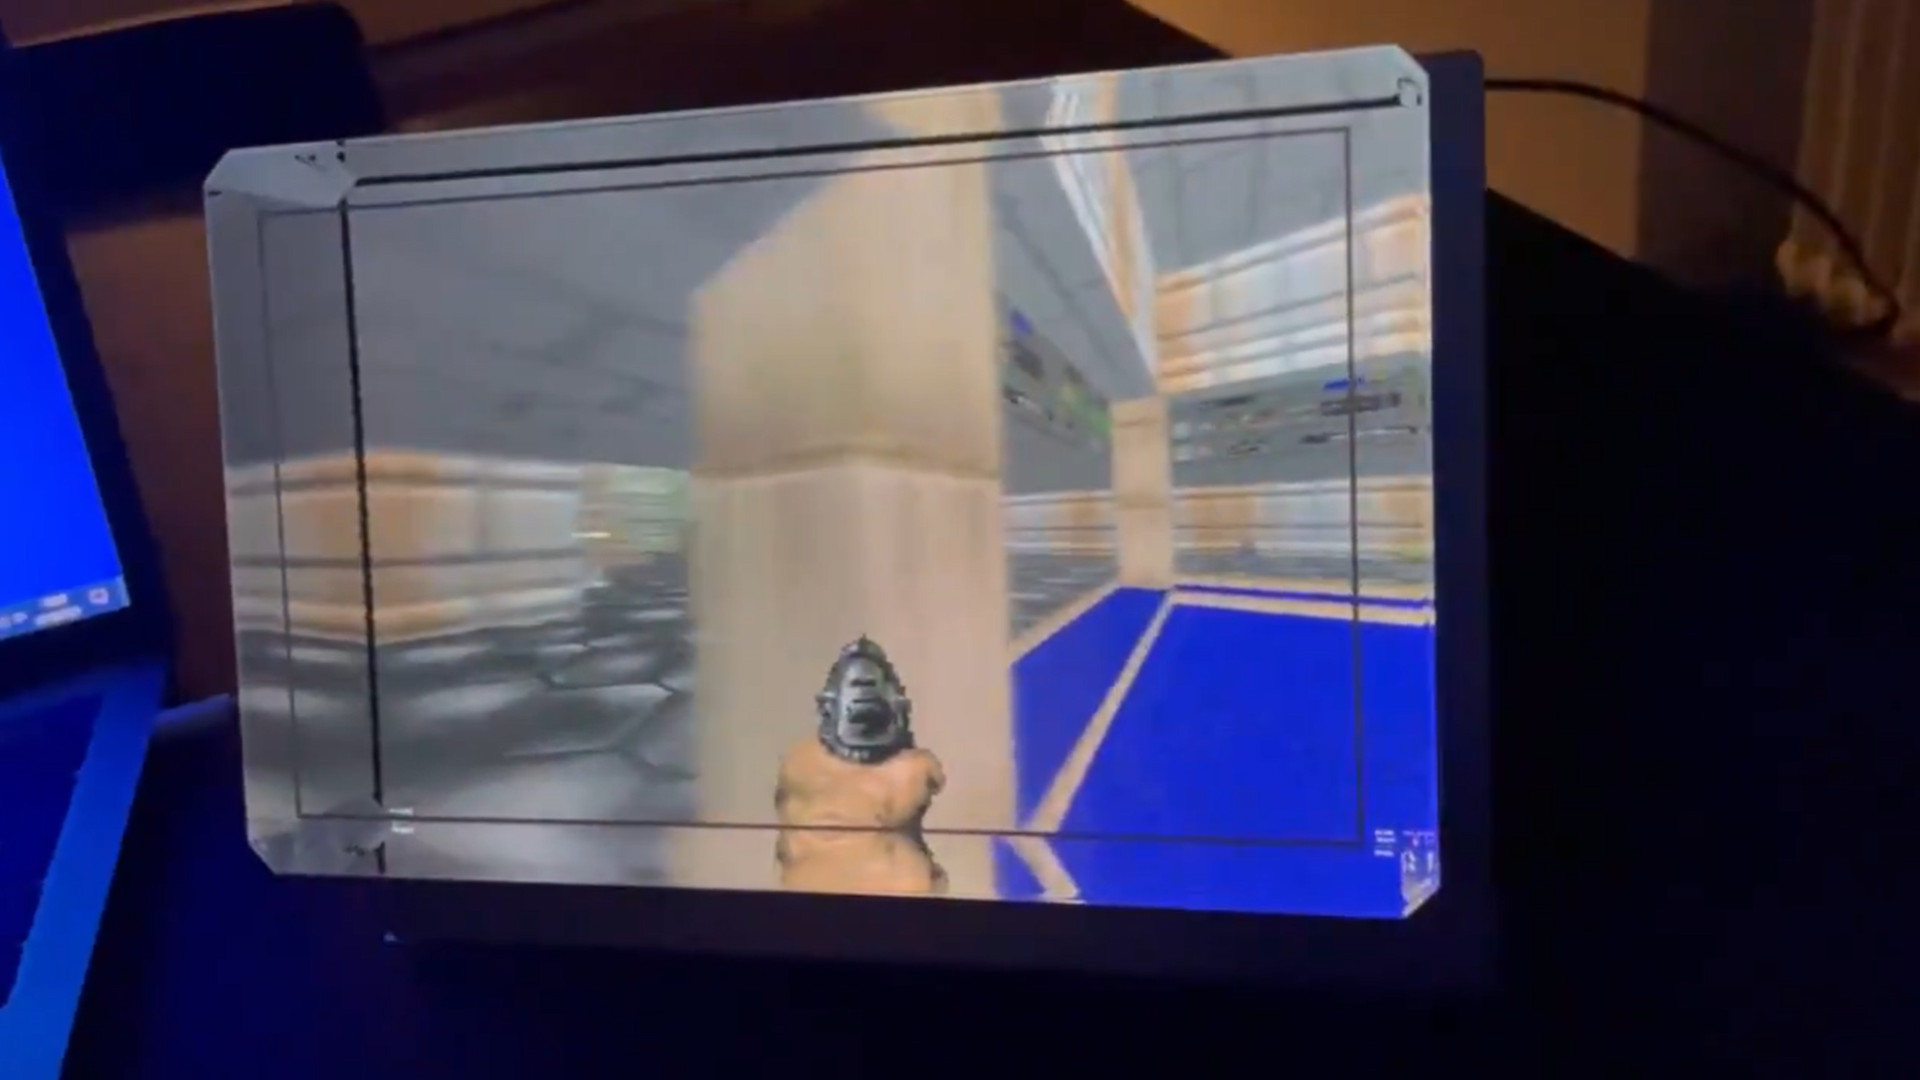 Here's Doom on a holographic display, so you can literally peek around corners